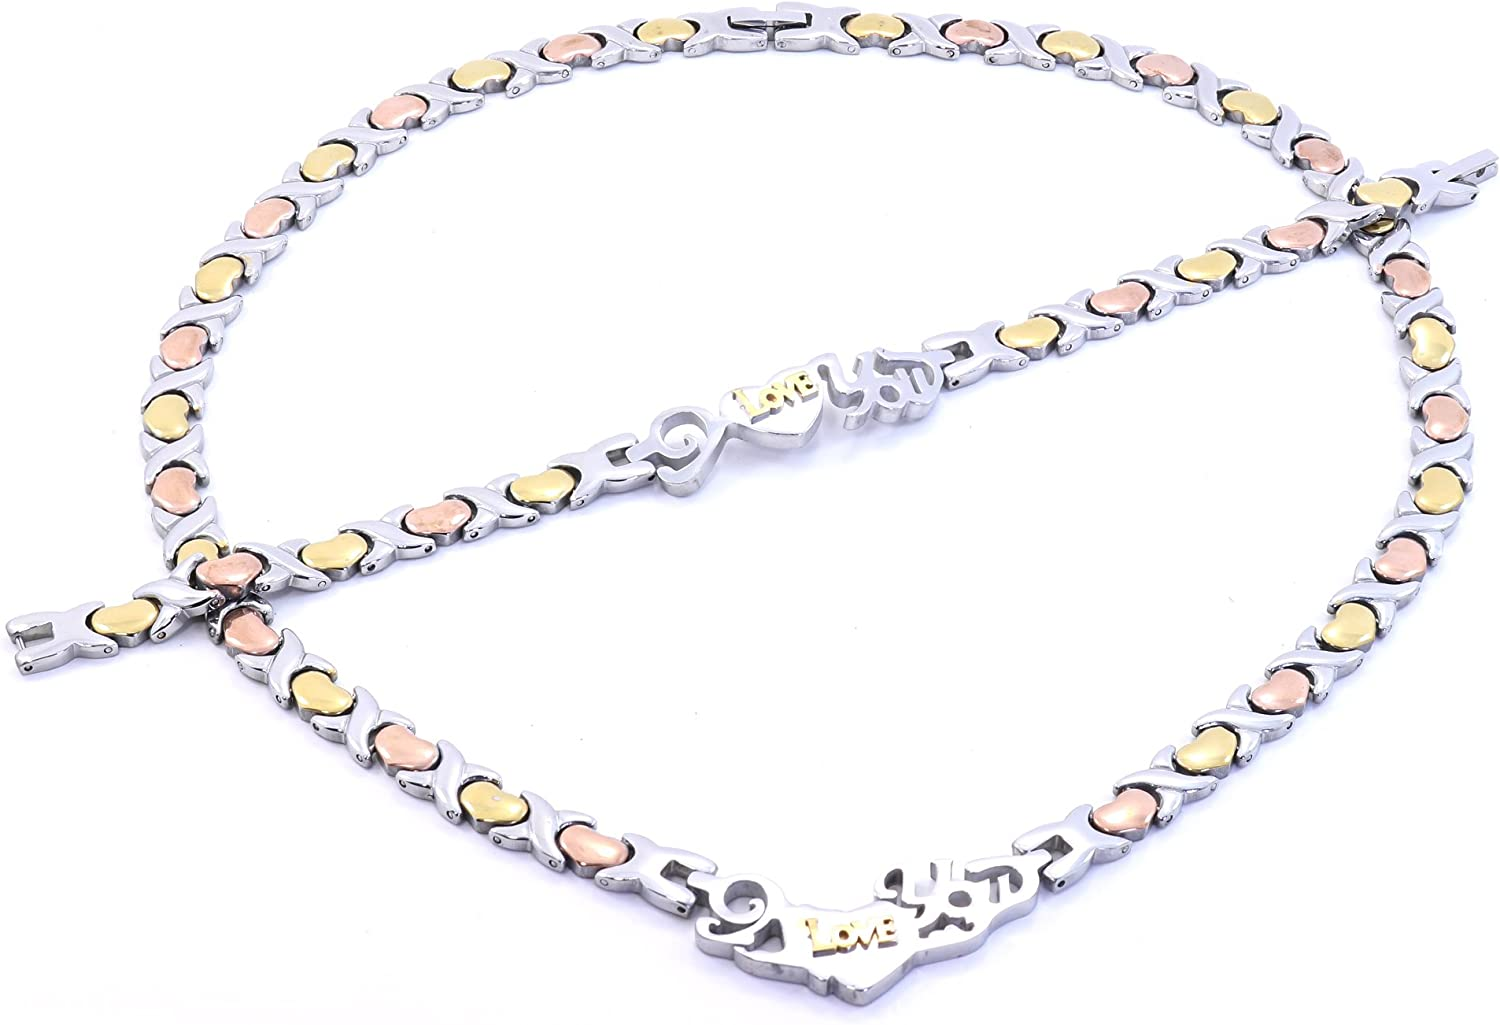 3 Tone I Love You HUGS and Kisses Necklace and Bracelet Set XOXO Stainless Steel 20